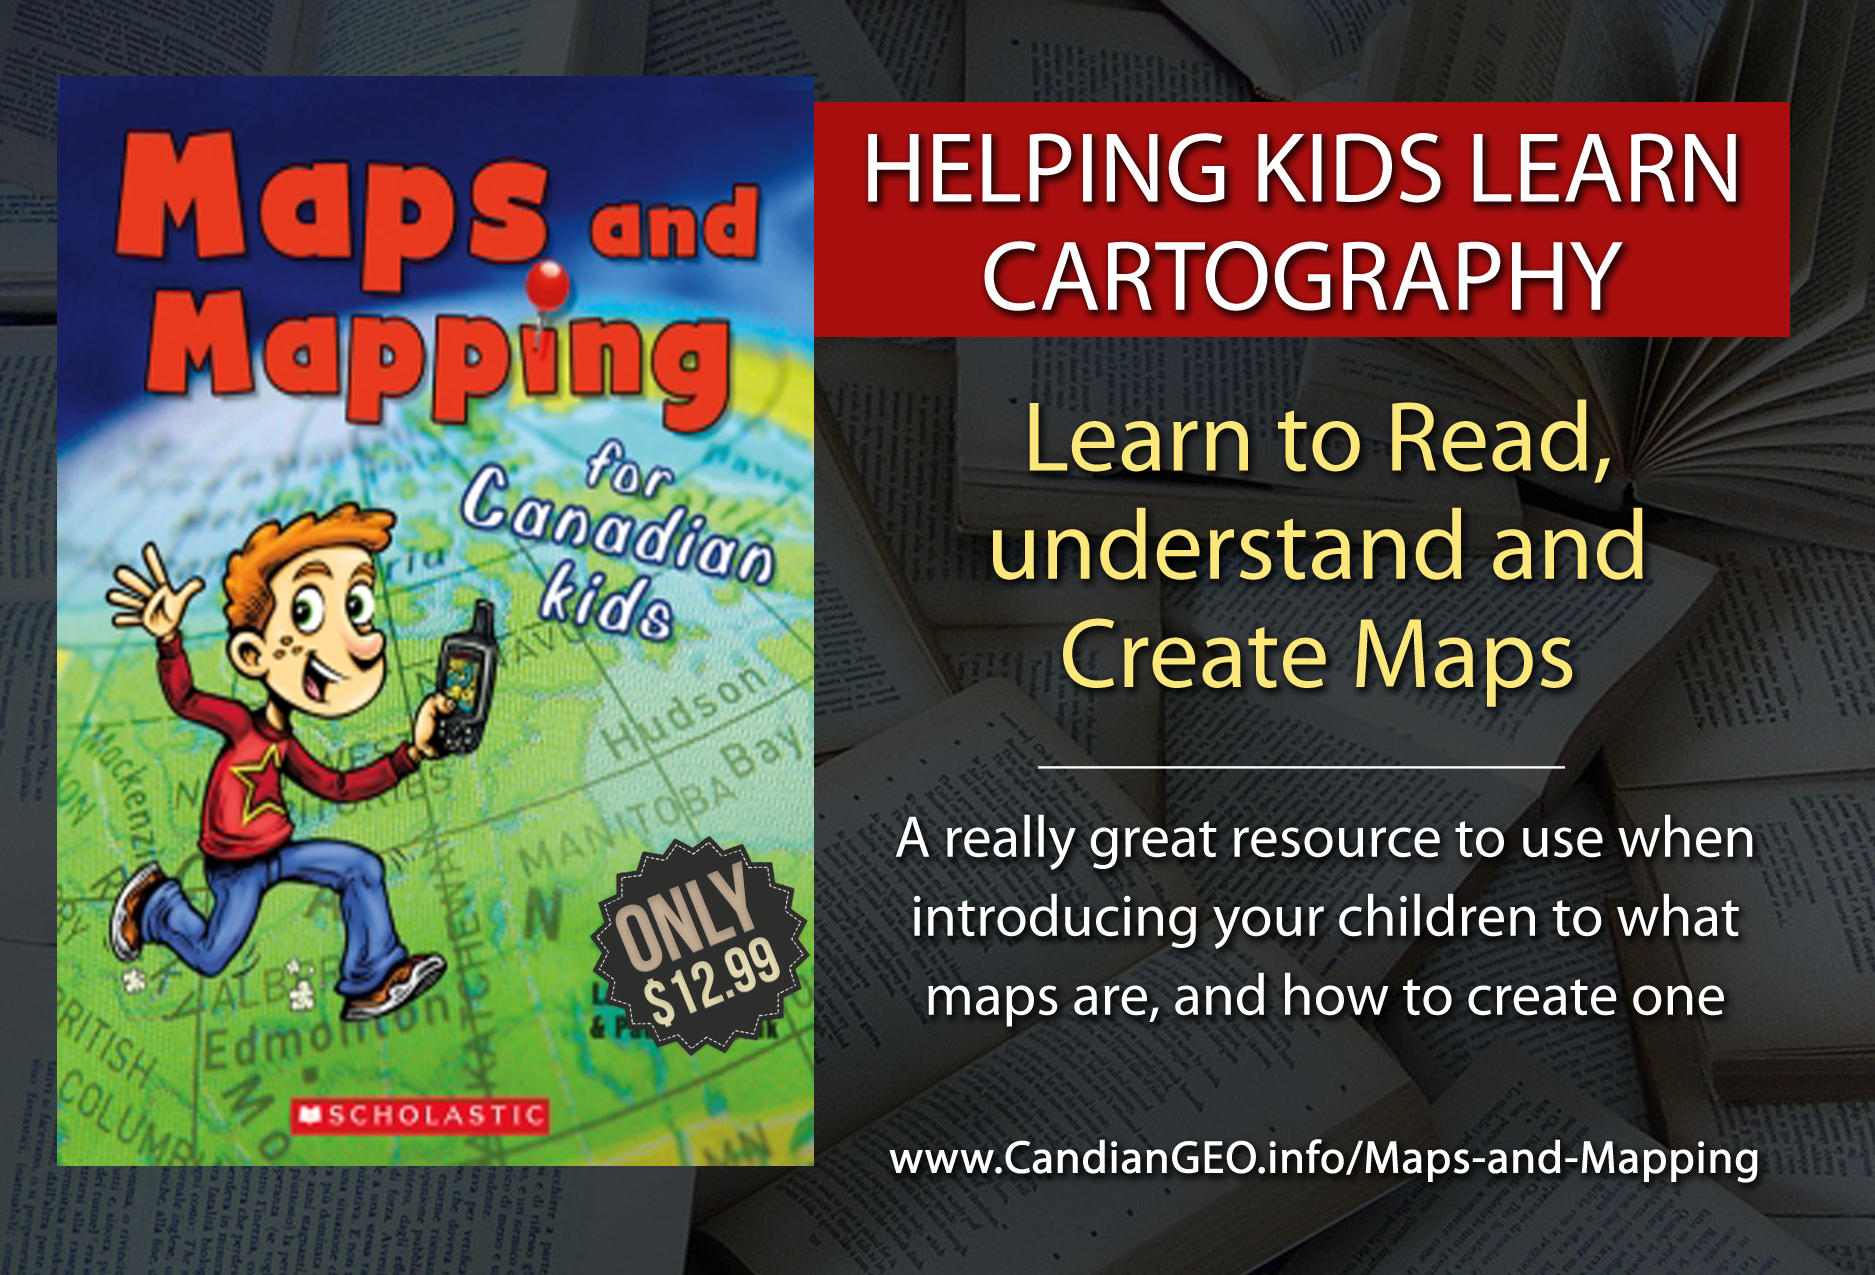 Maps and Mapping for Canadian Kids